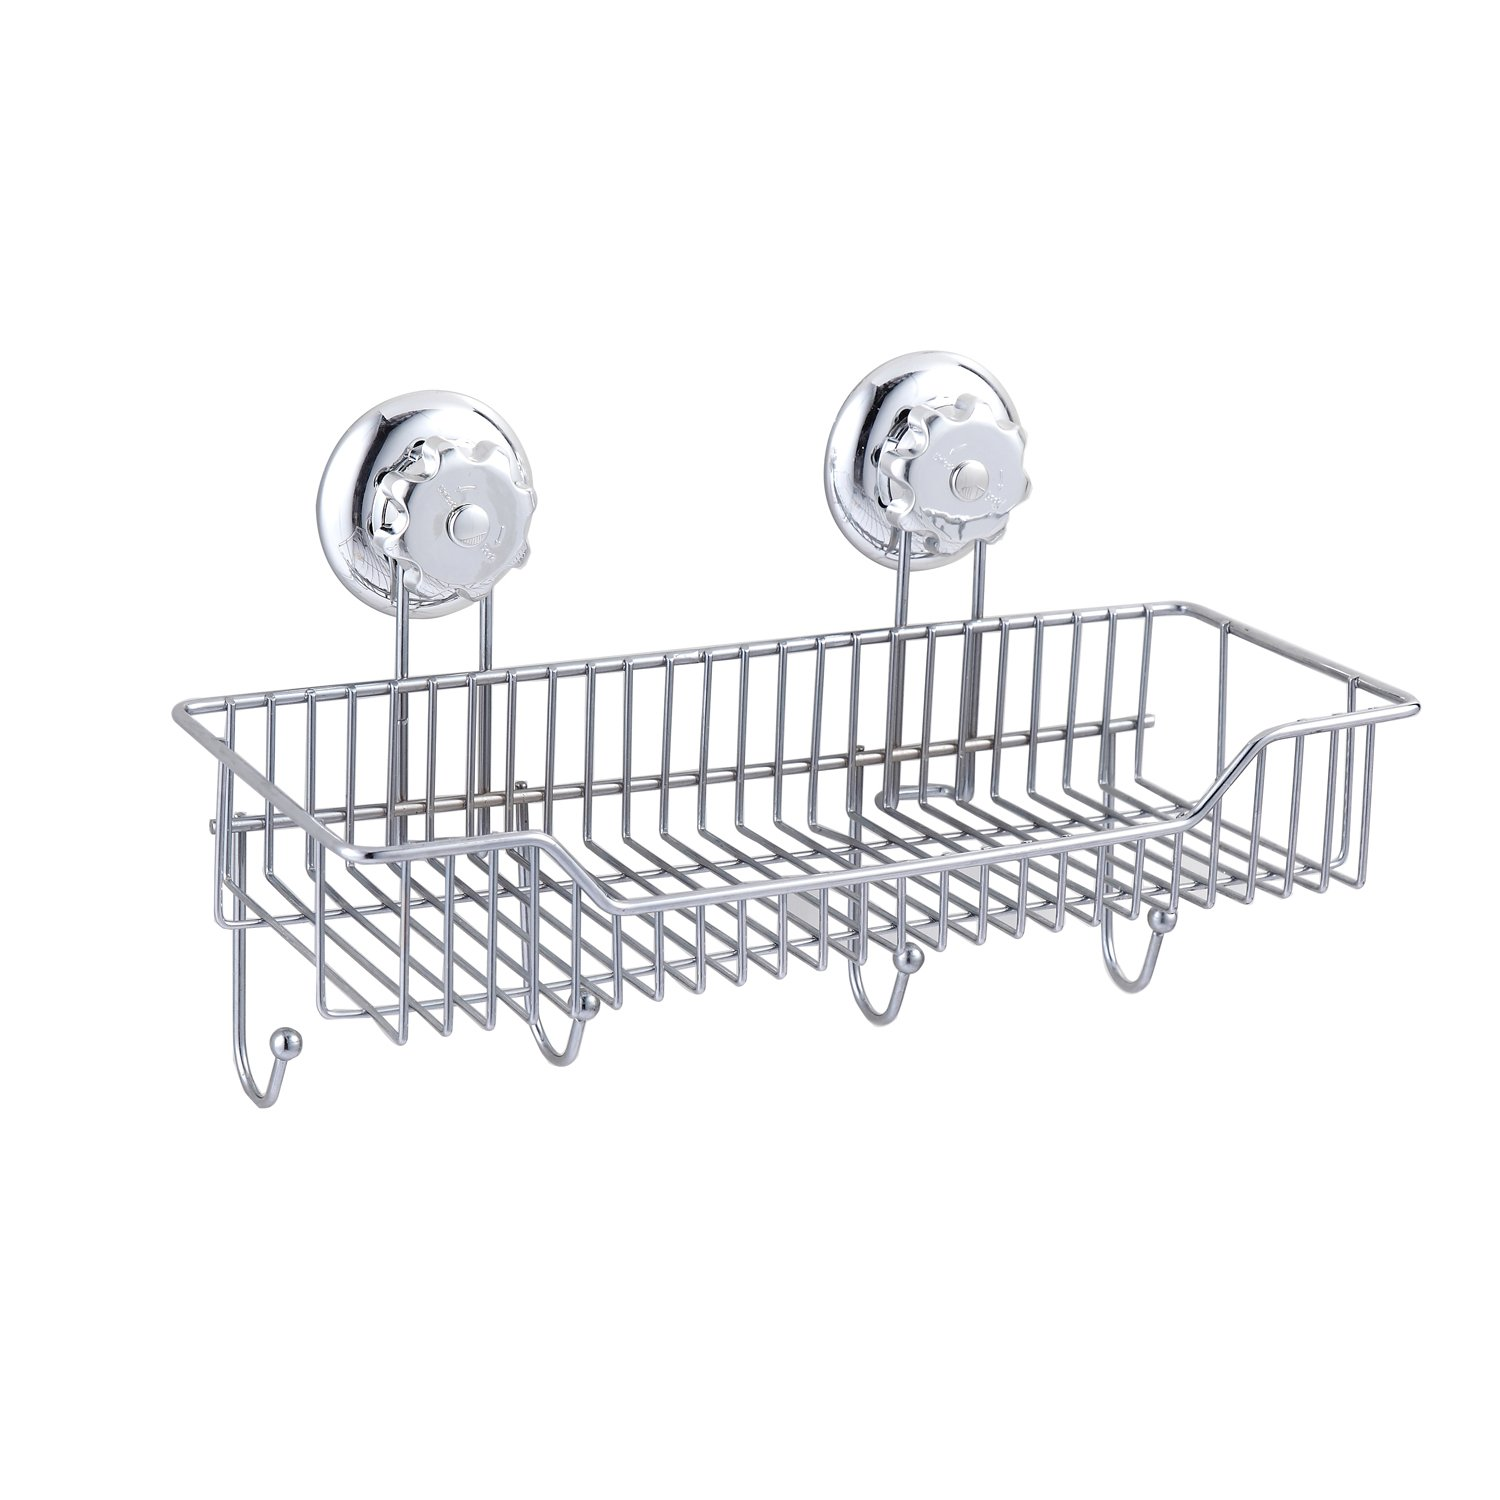 Shower Caddy Combo Basket Hooks Suction Cup Stainless Steel Bathroom  Organizer